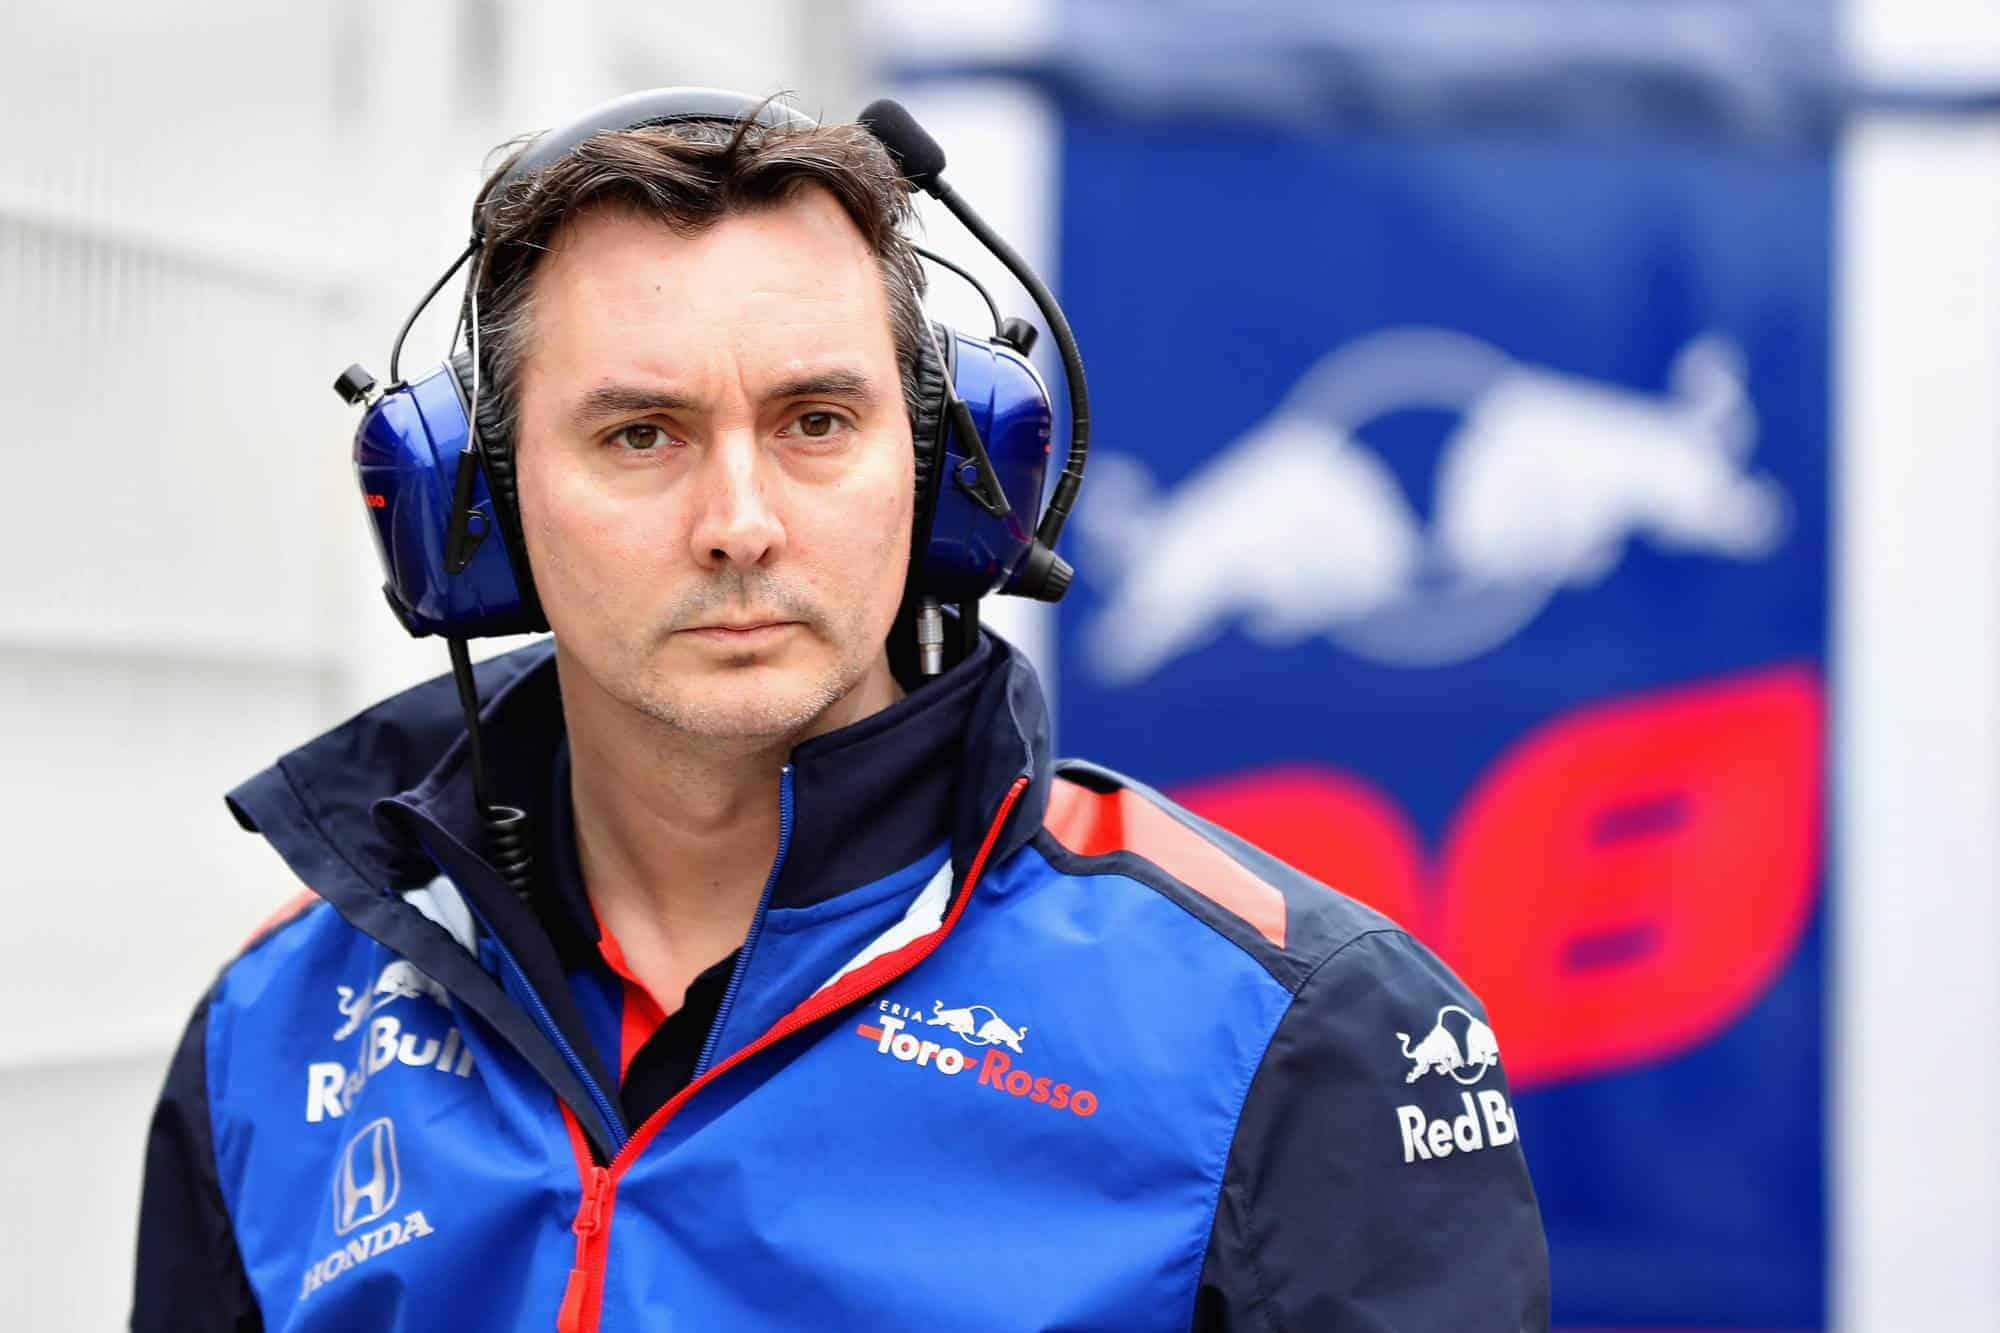 James Key Toro Rosso Honda F1 2018 Photo Red Bull